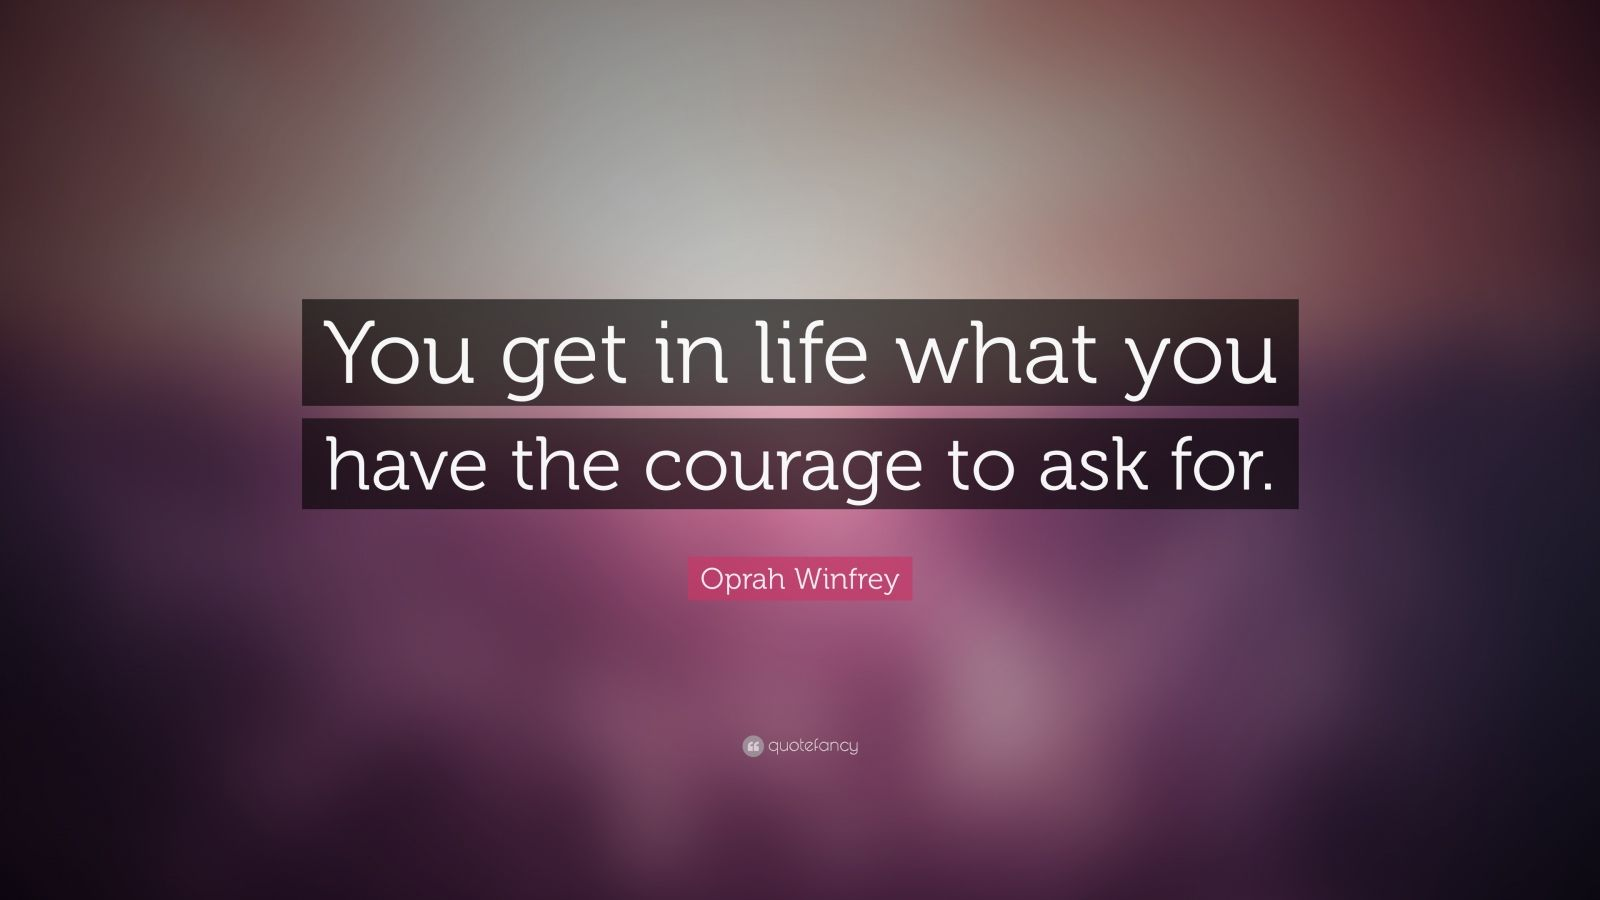 Dalai Lama Wallpaper Quotes Oprah Winfrey Quote You Get In Life What You Have The